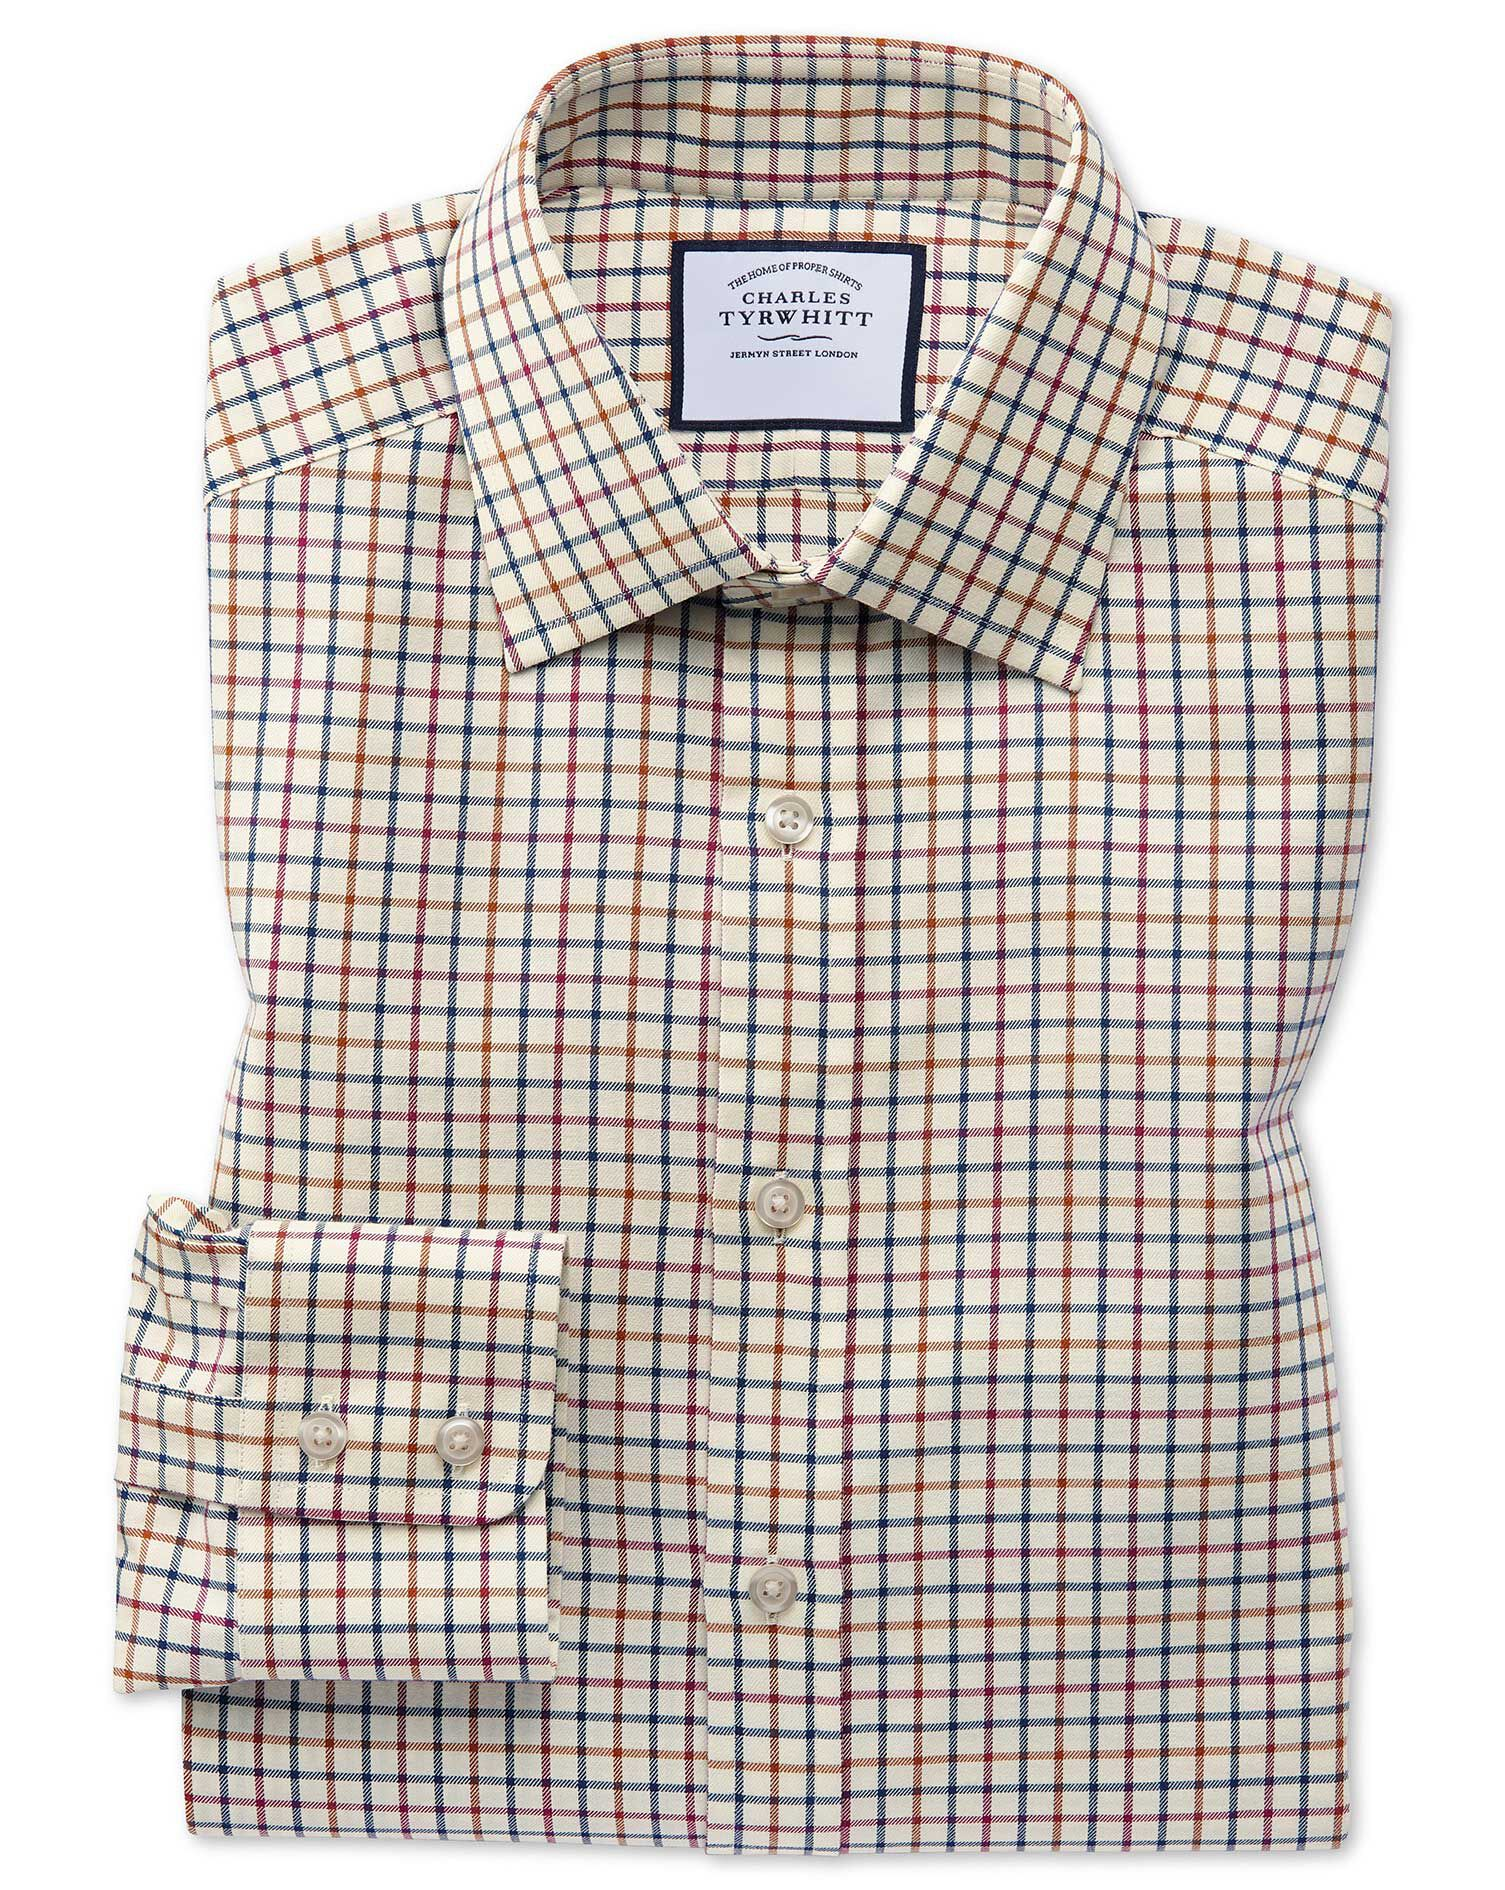 Classic Fit Navy and Berry Country Check Cotton Formal Shirt Single Cuff Size 19/37 by Charles Tyrwh